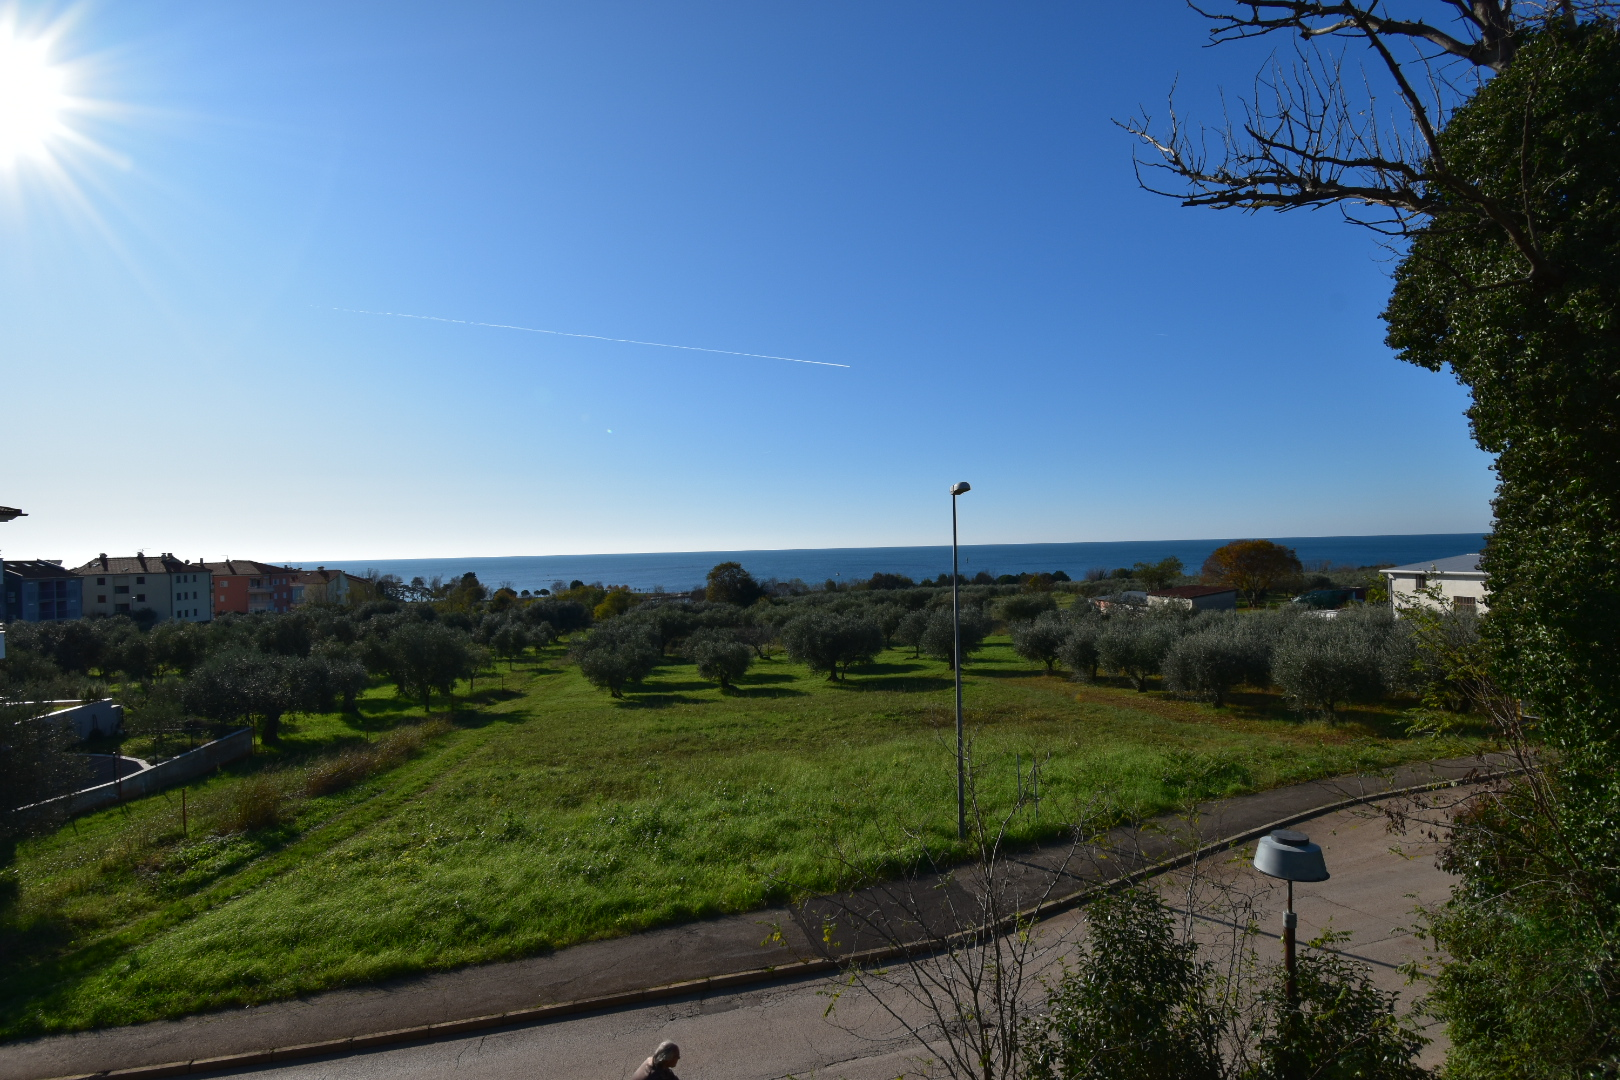 Luxury real estate Istria, Farkaš sells land 370 from the sea, Umag